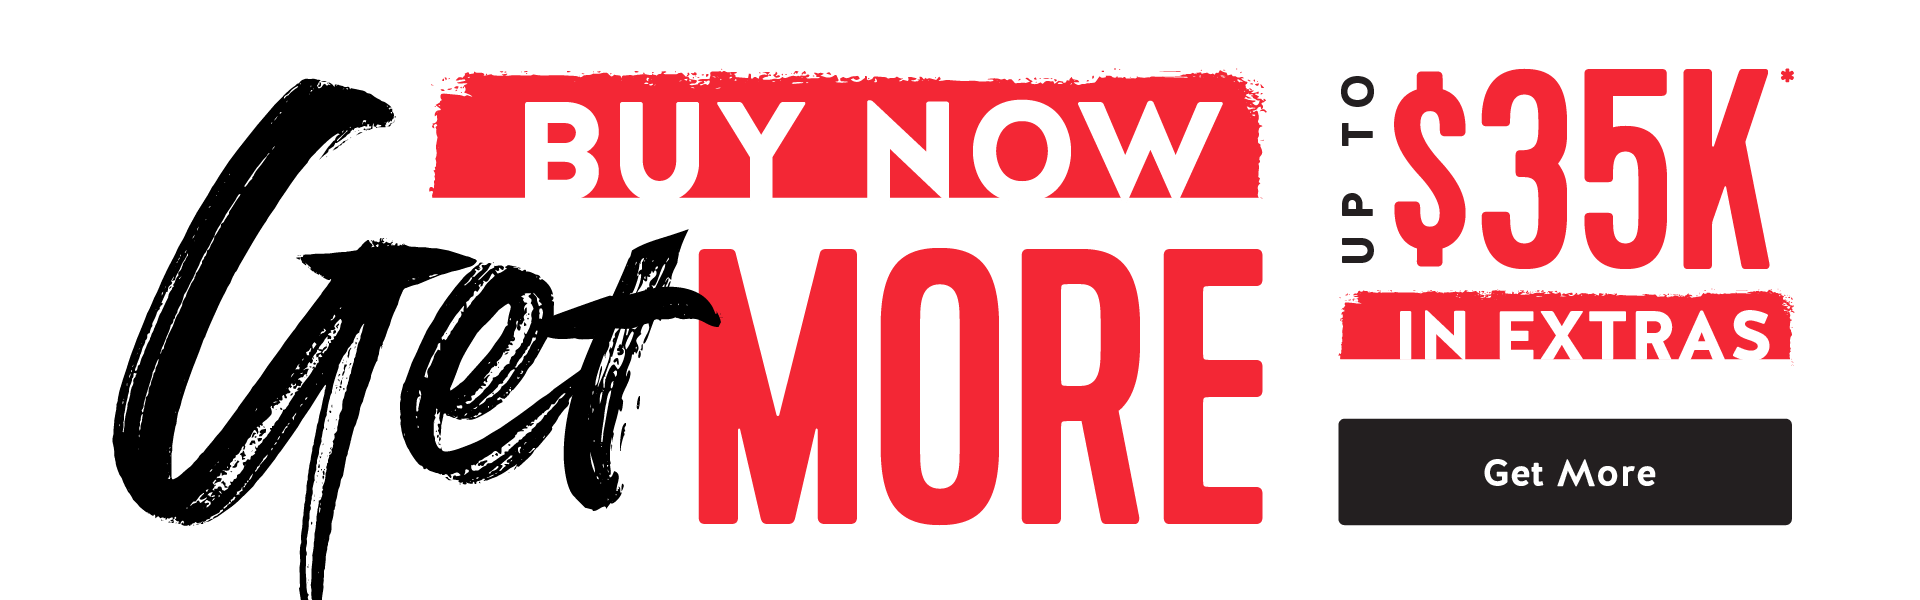 Buy now get more $35k in extras - get started